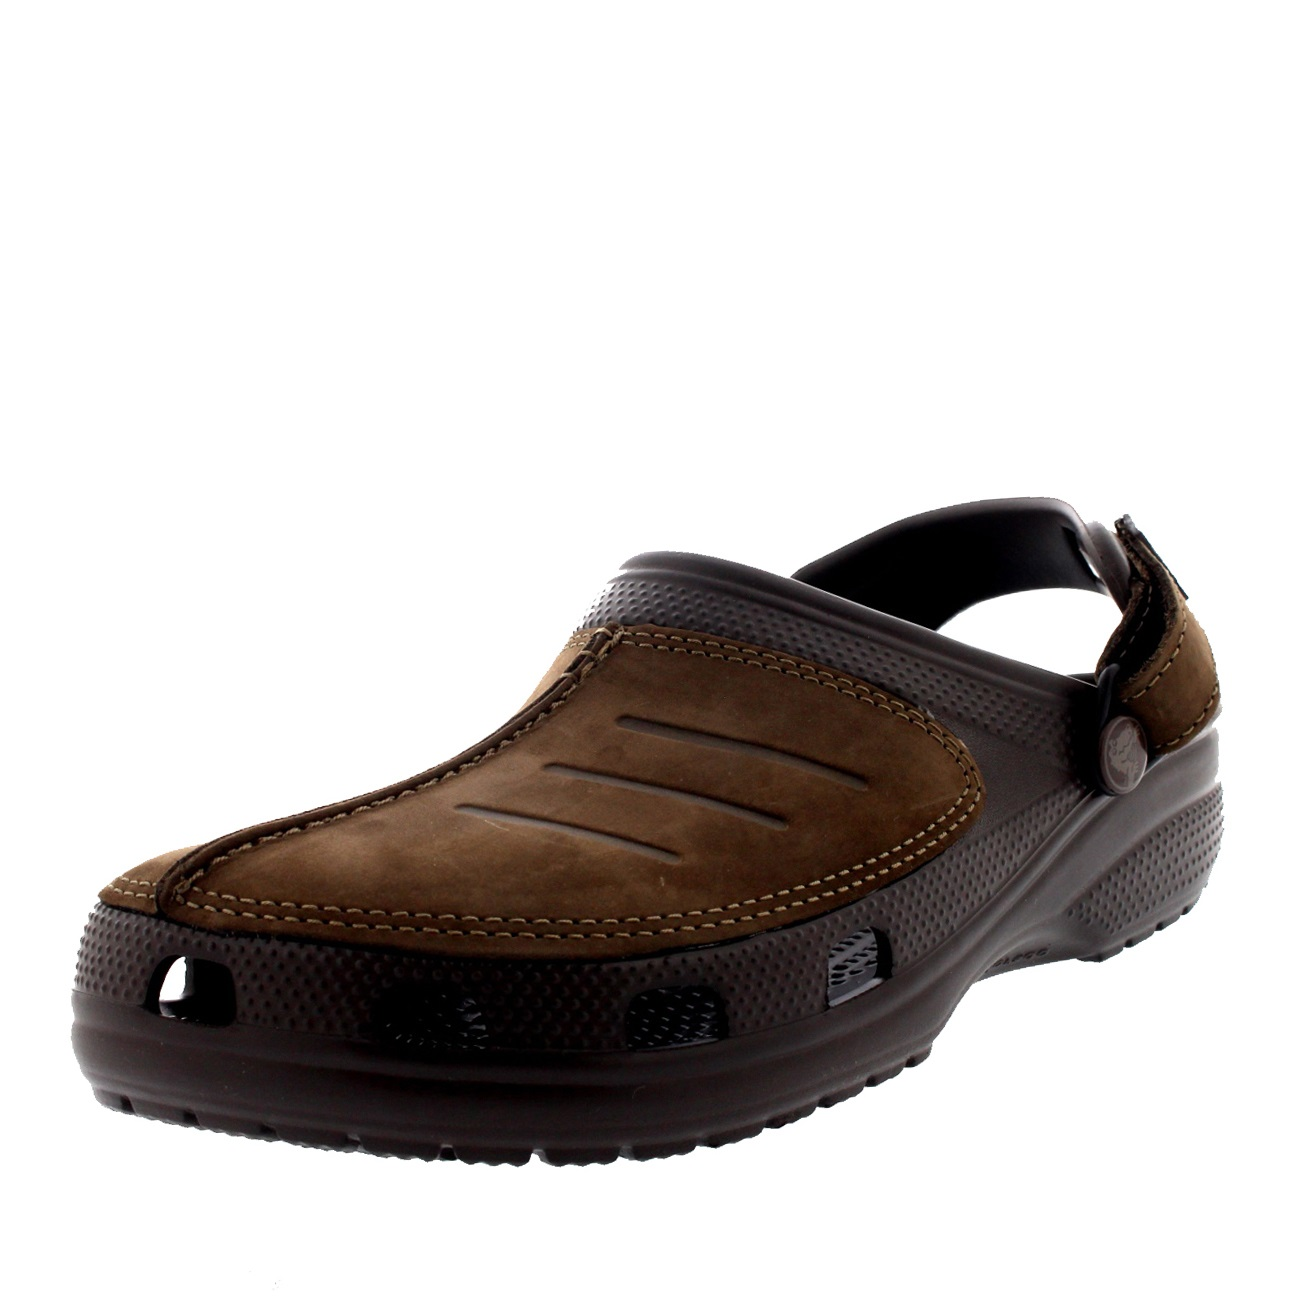 Mens Comfy Holiday Shoes